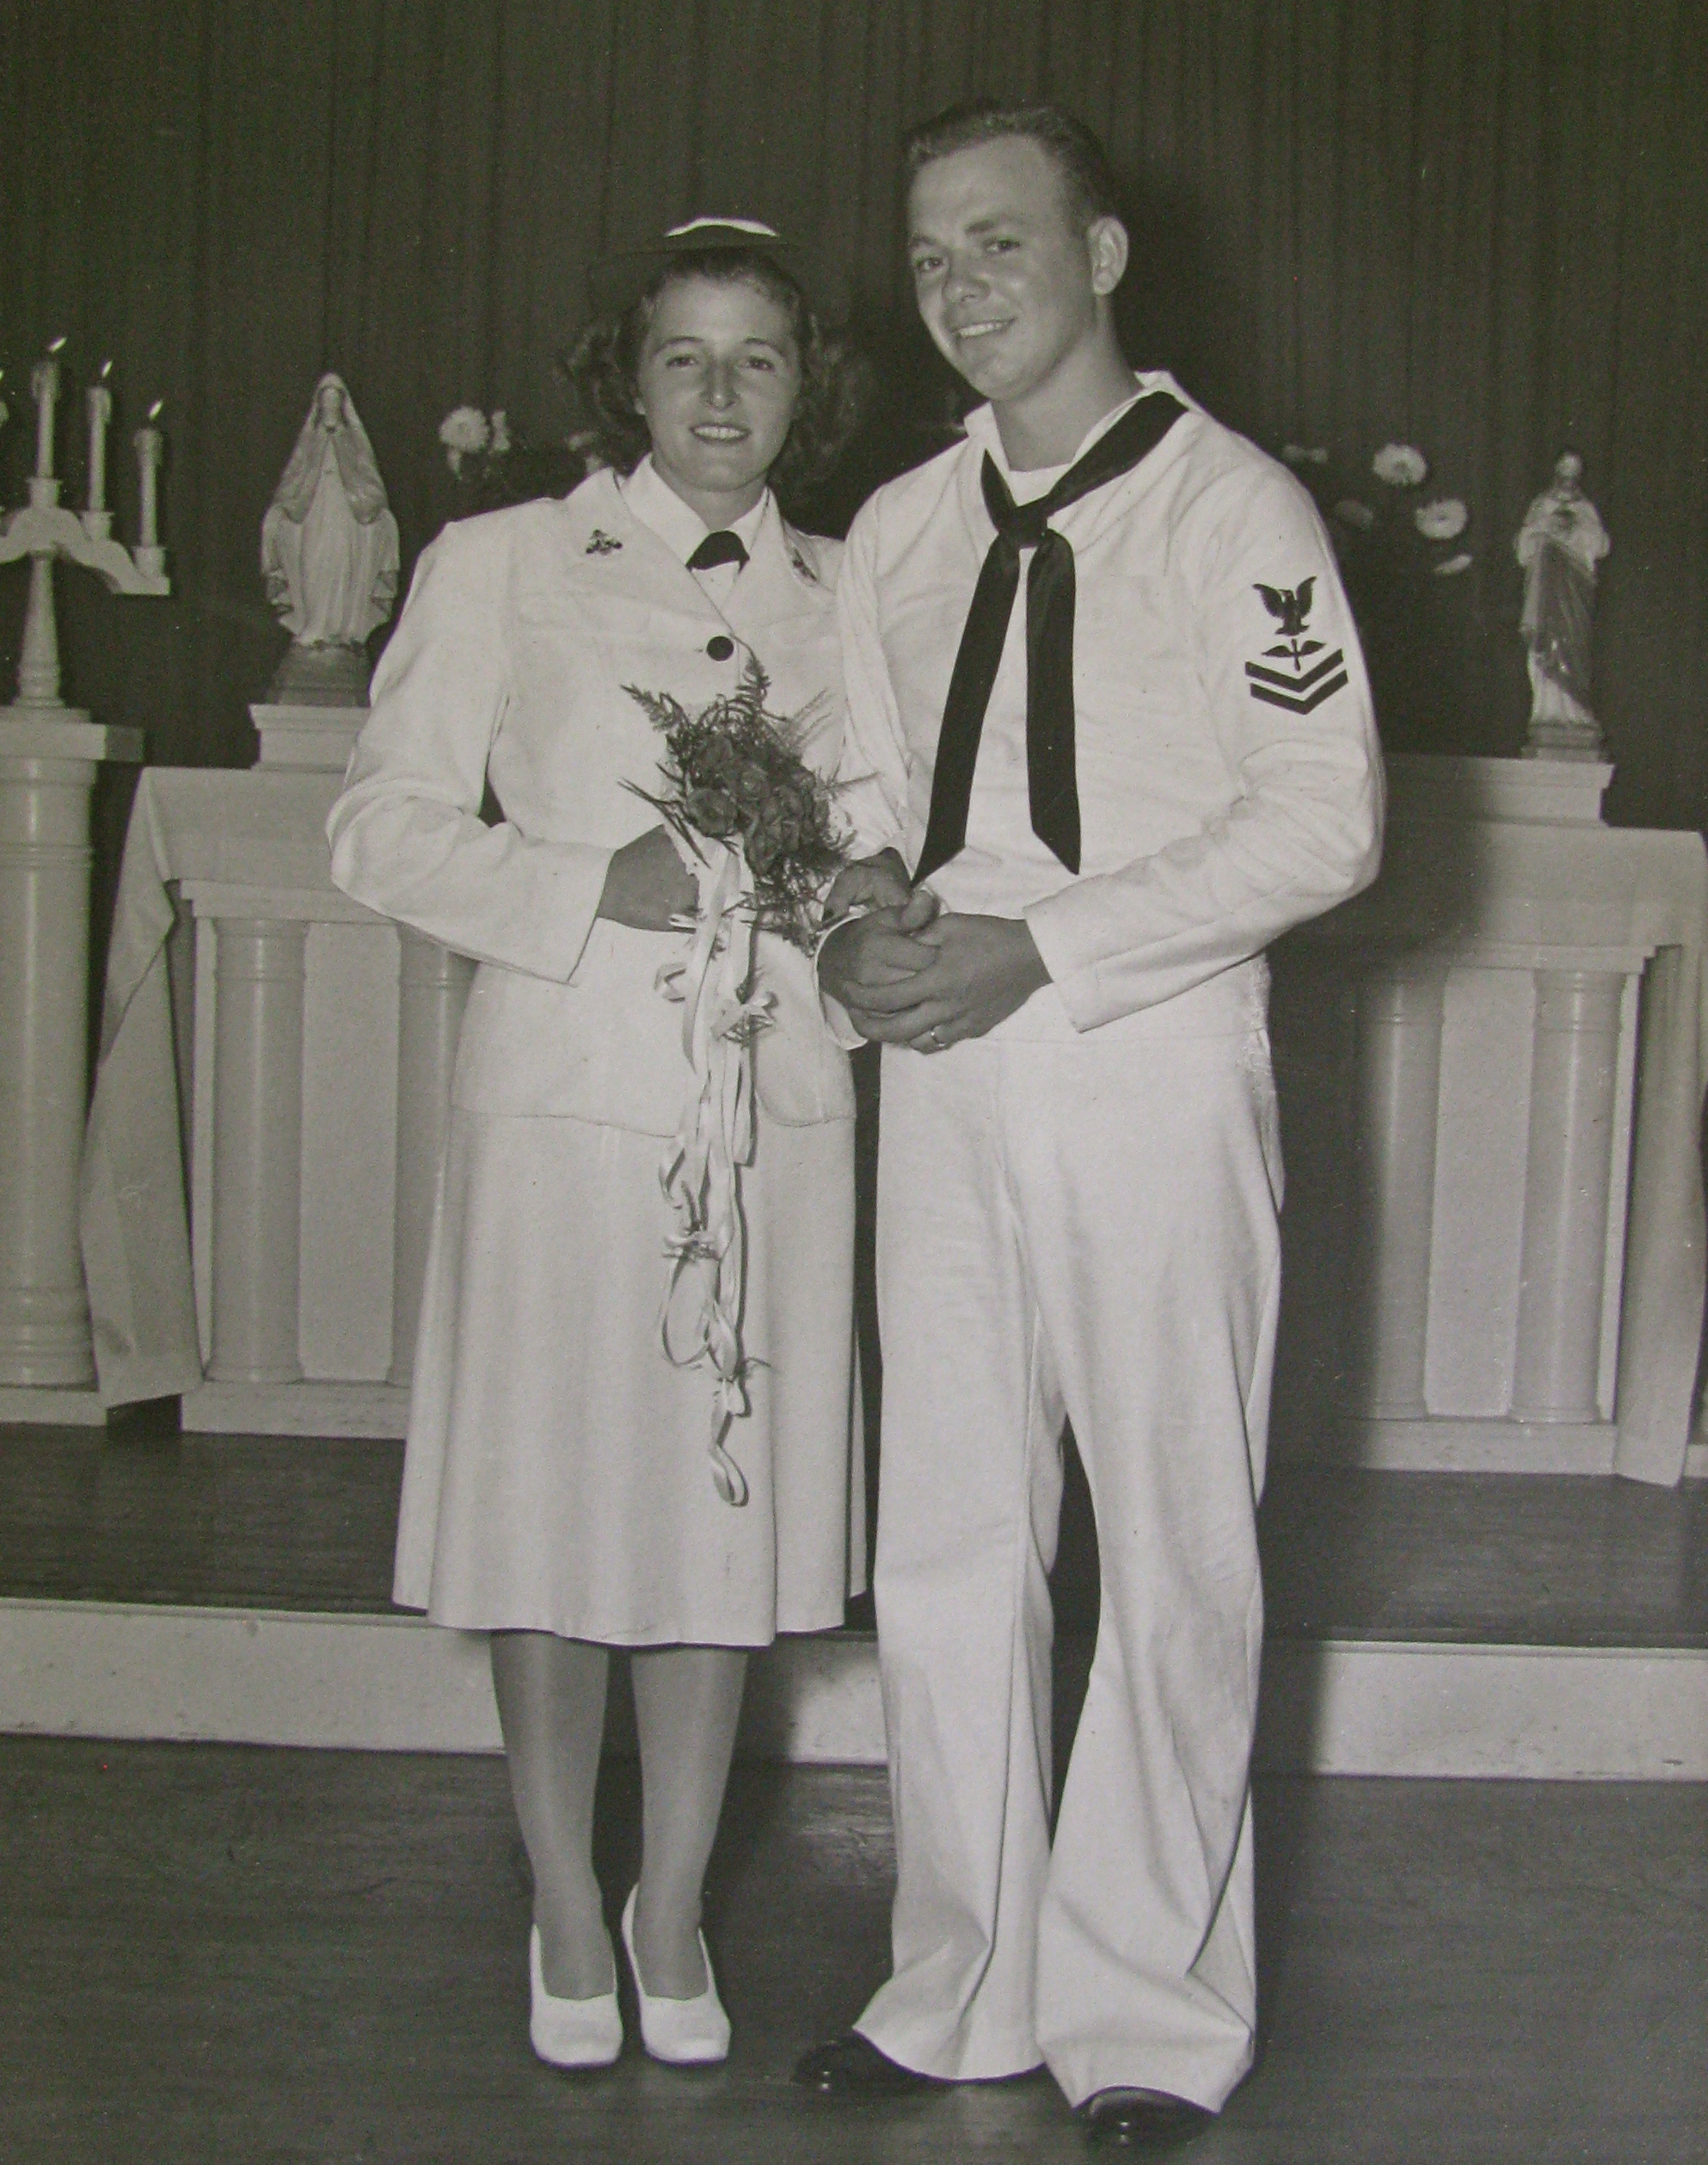 Kay and William Mc Neil in uniform on their wedding day, Aug. 21, 1945 ...